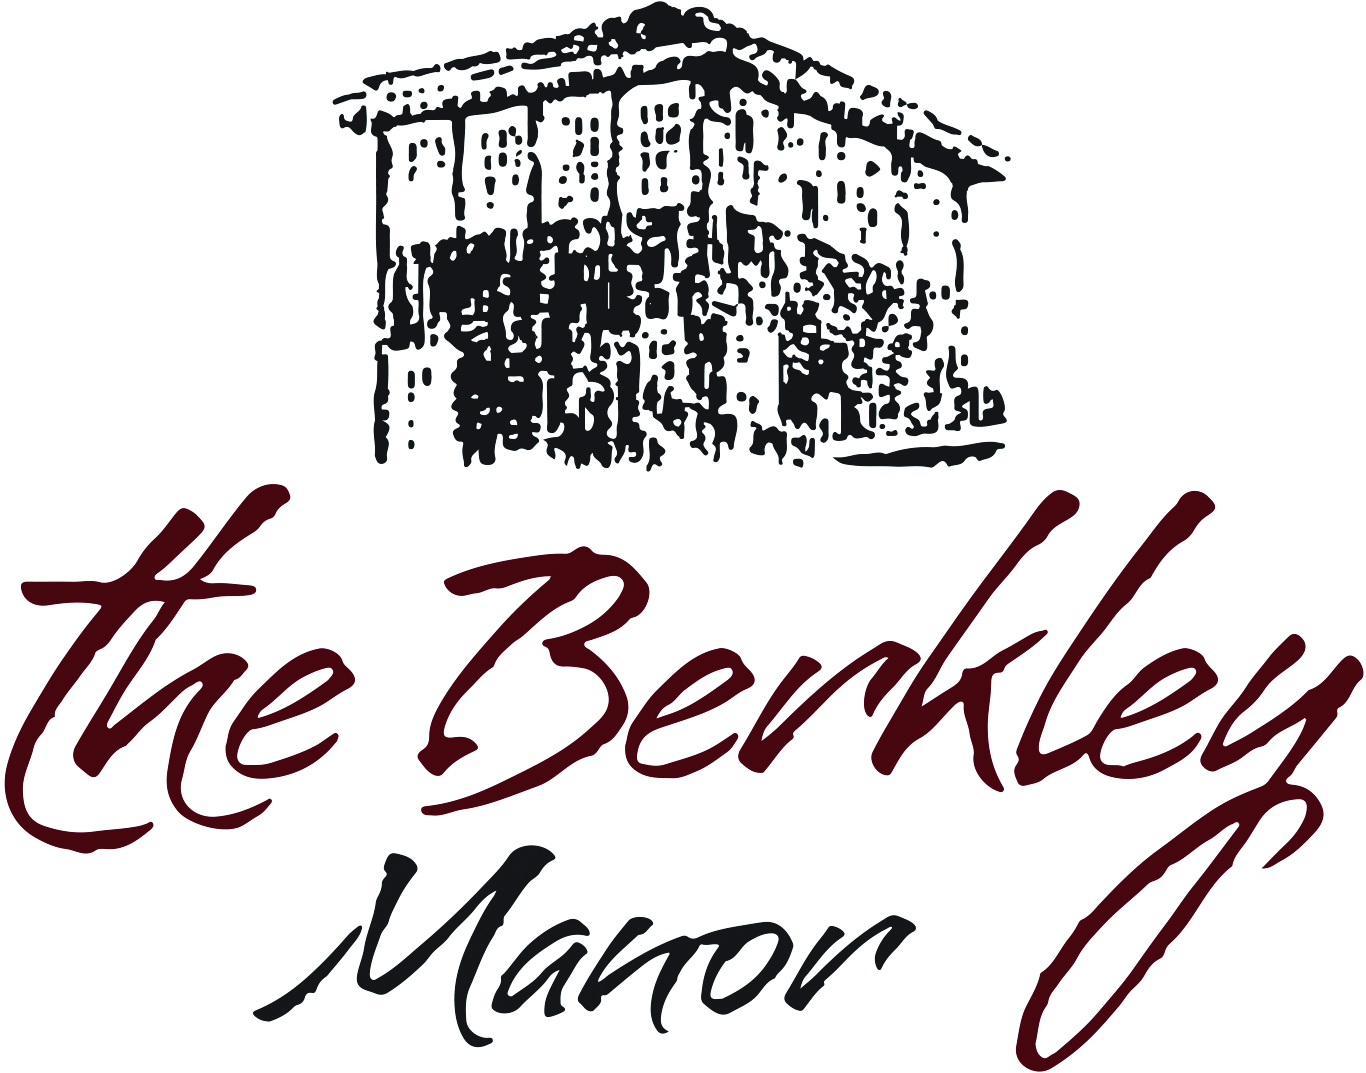 The Berkley Manor Ocracoke